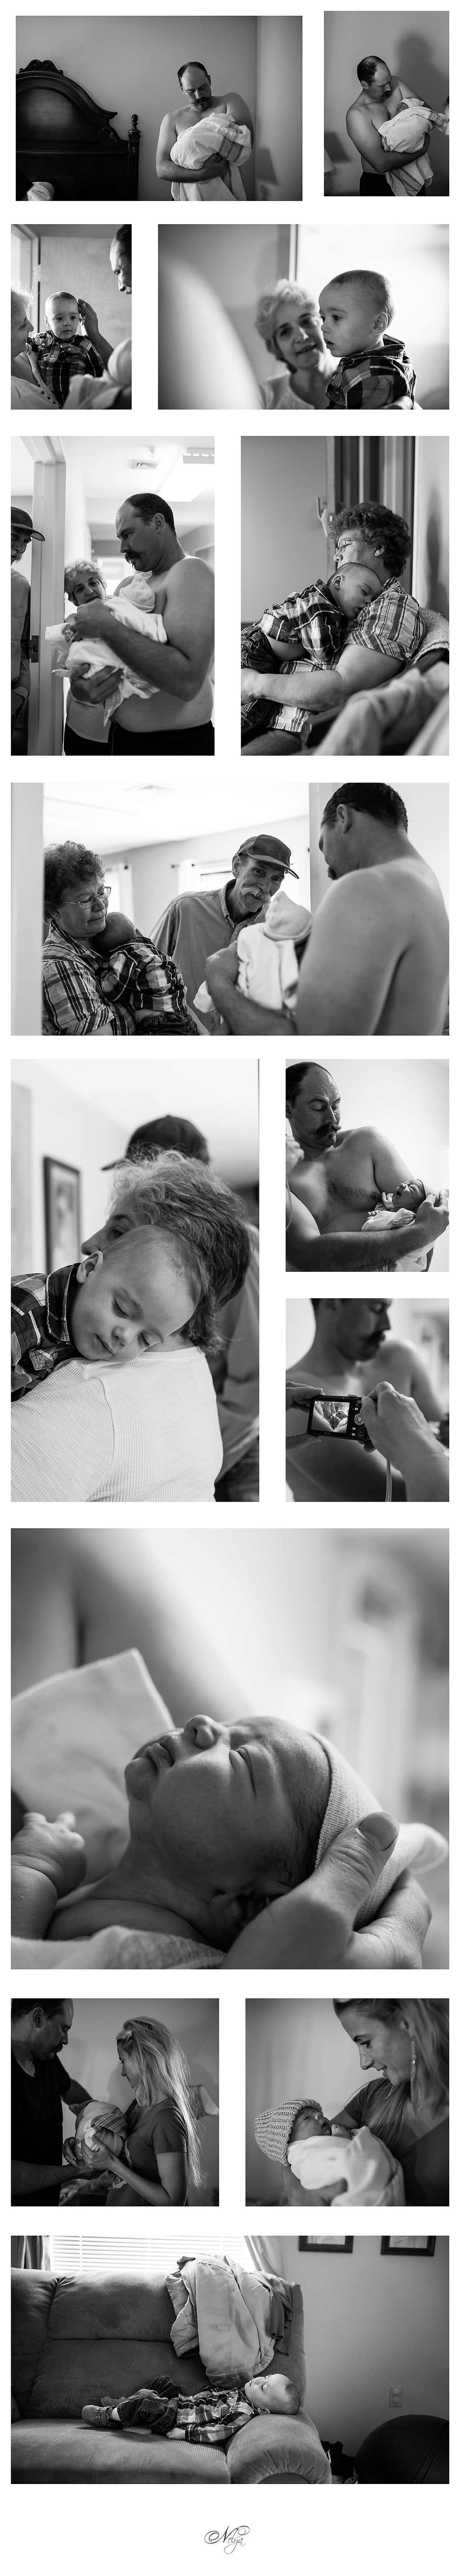 birth photography story 3a